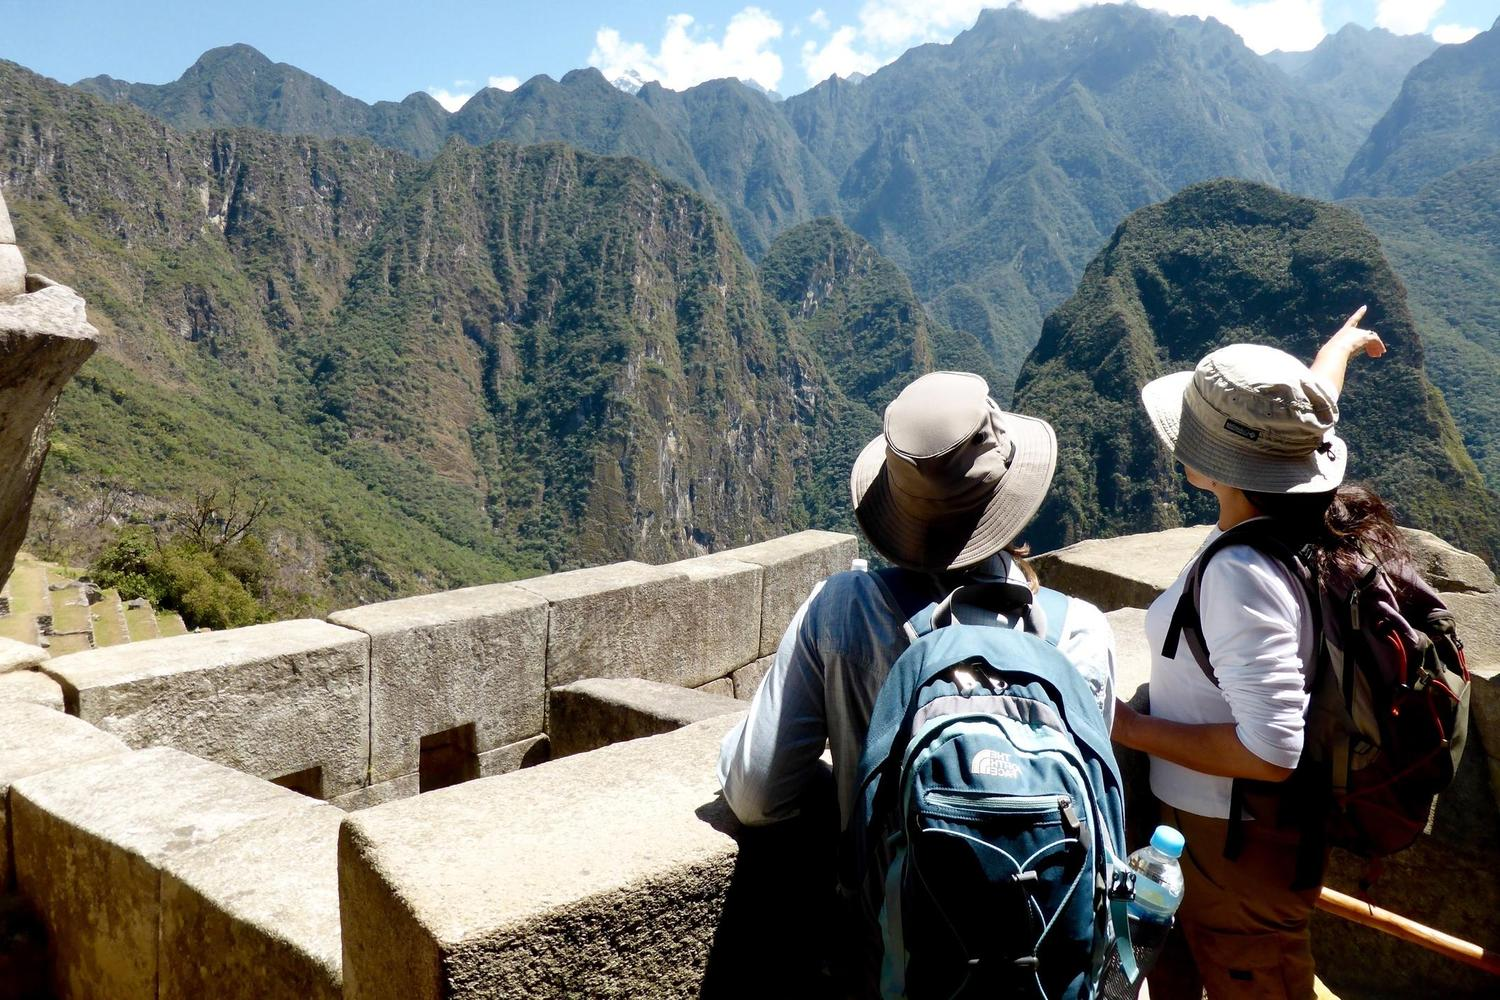 Looking out over the Royal Inca Trail to Machu Picchu